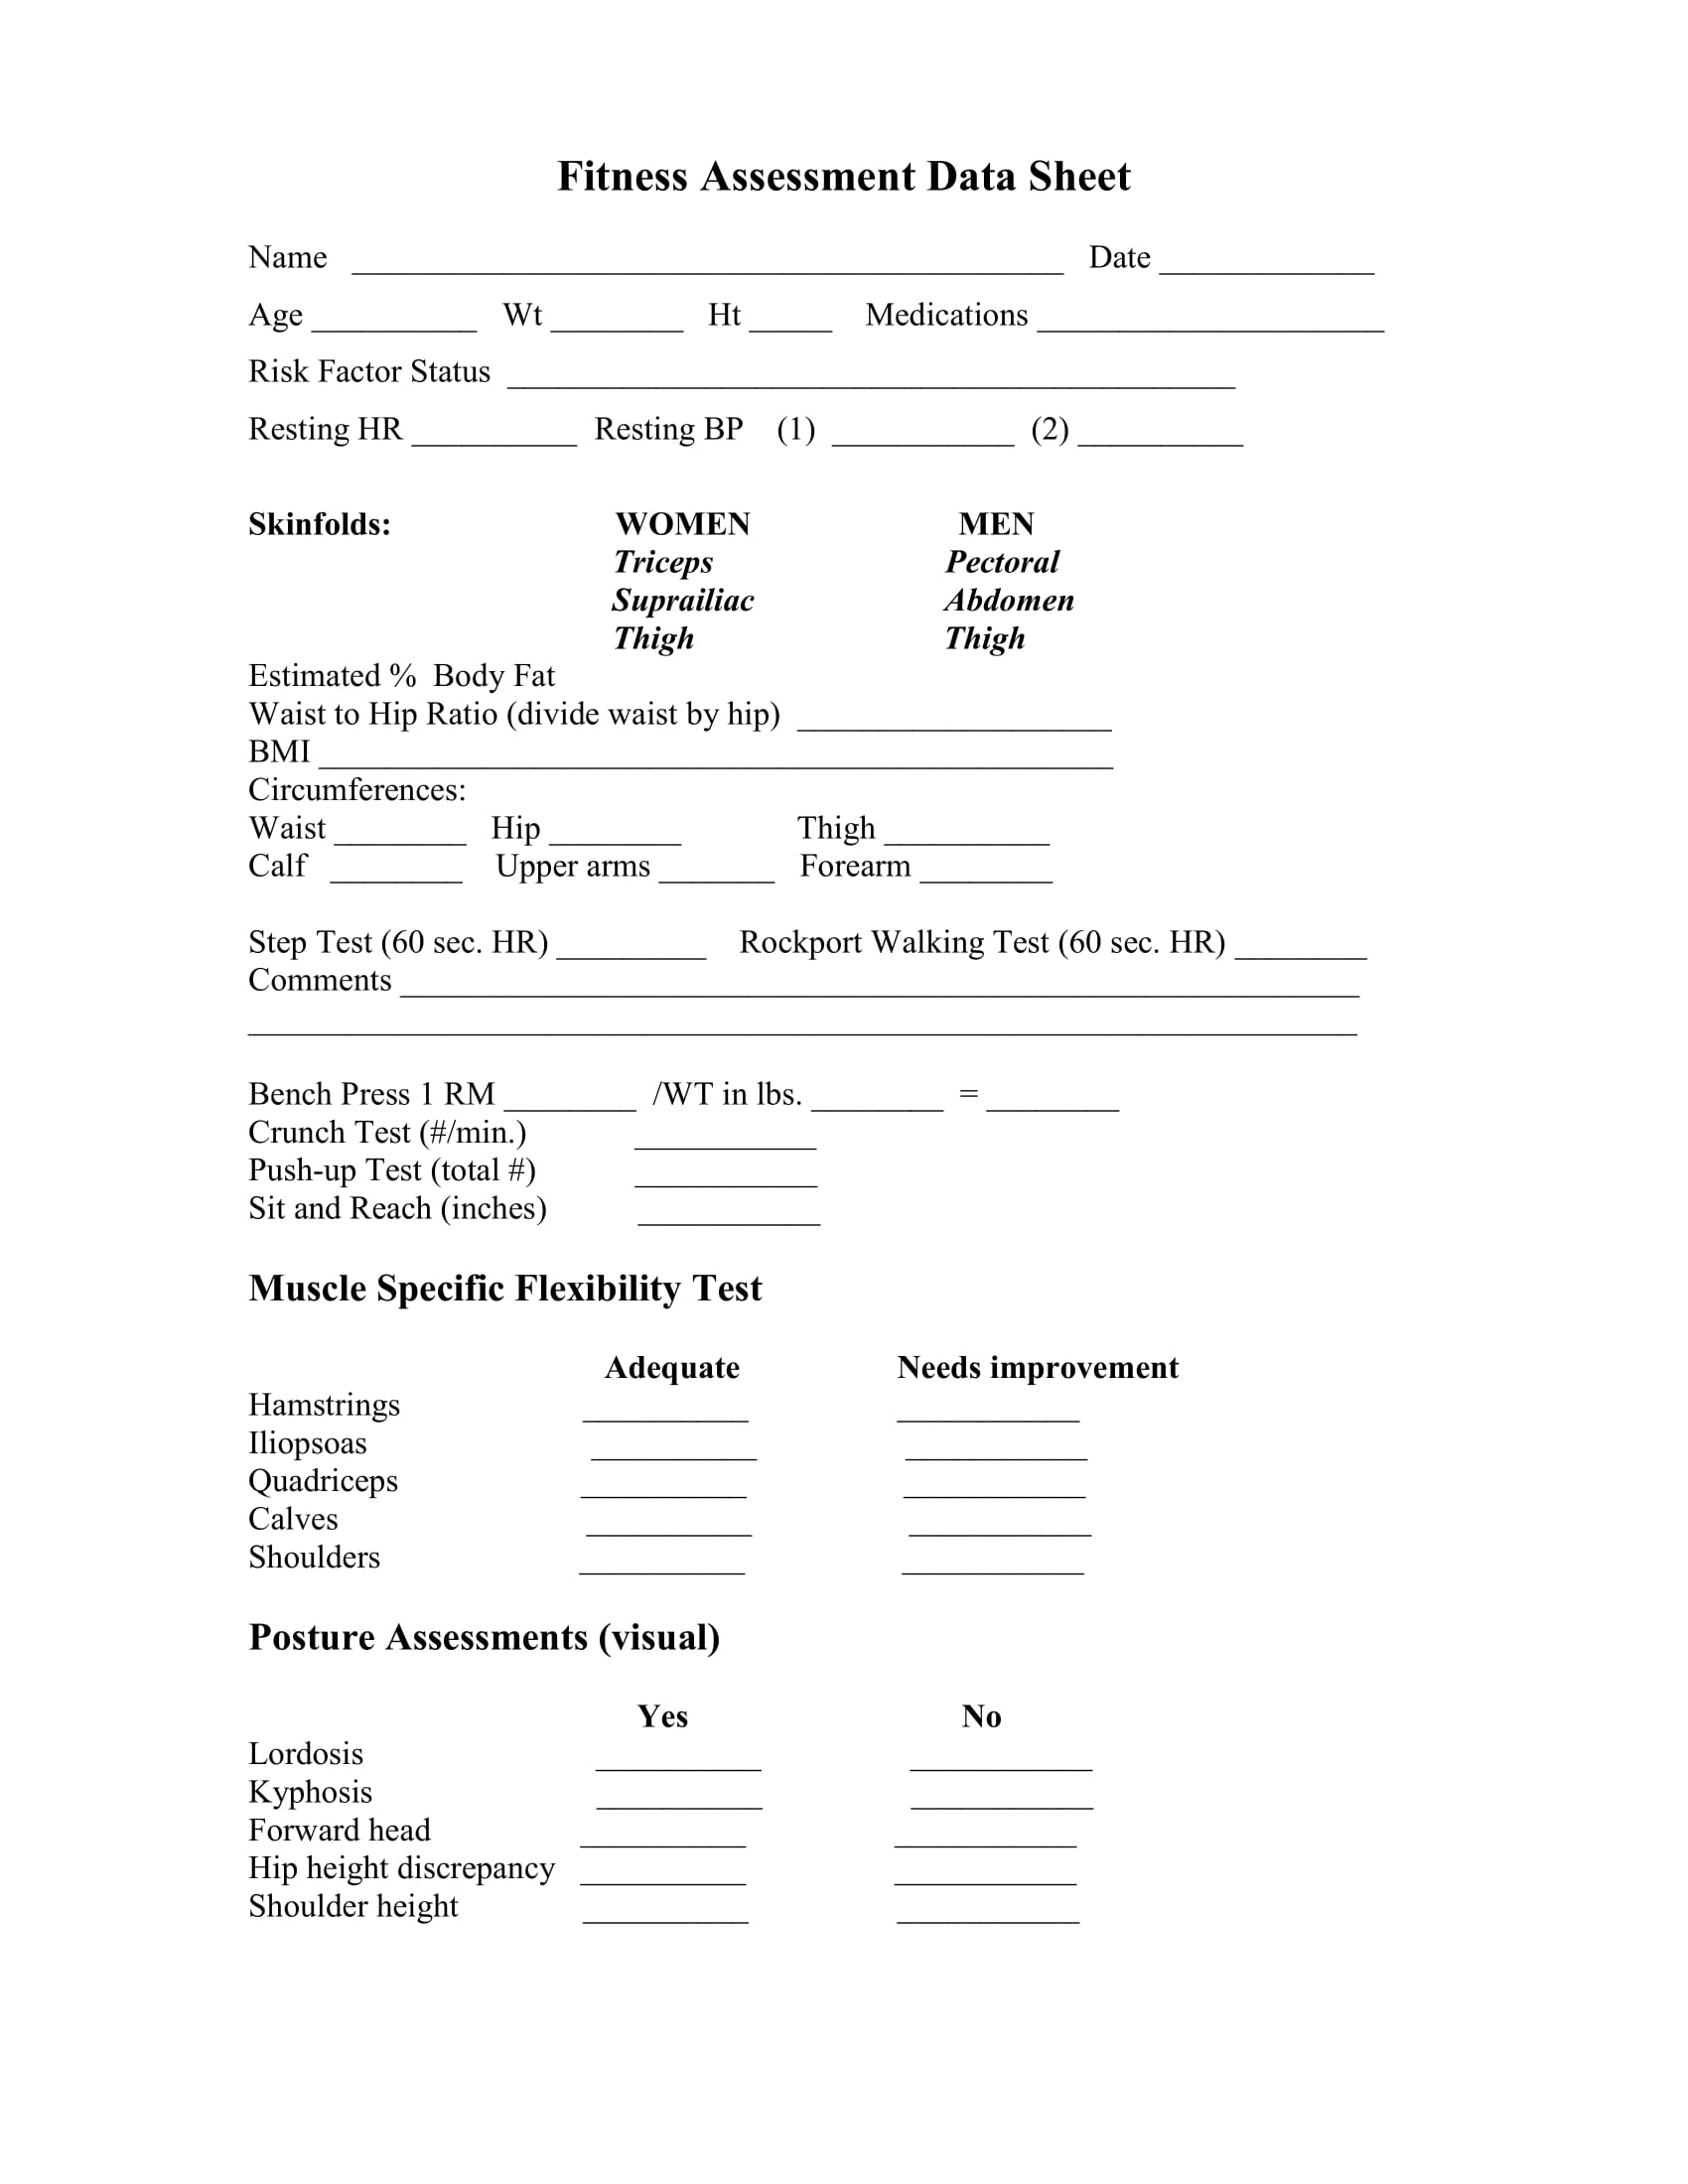 Essment Form In Pdf | Fitness Assessment Form